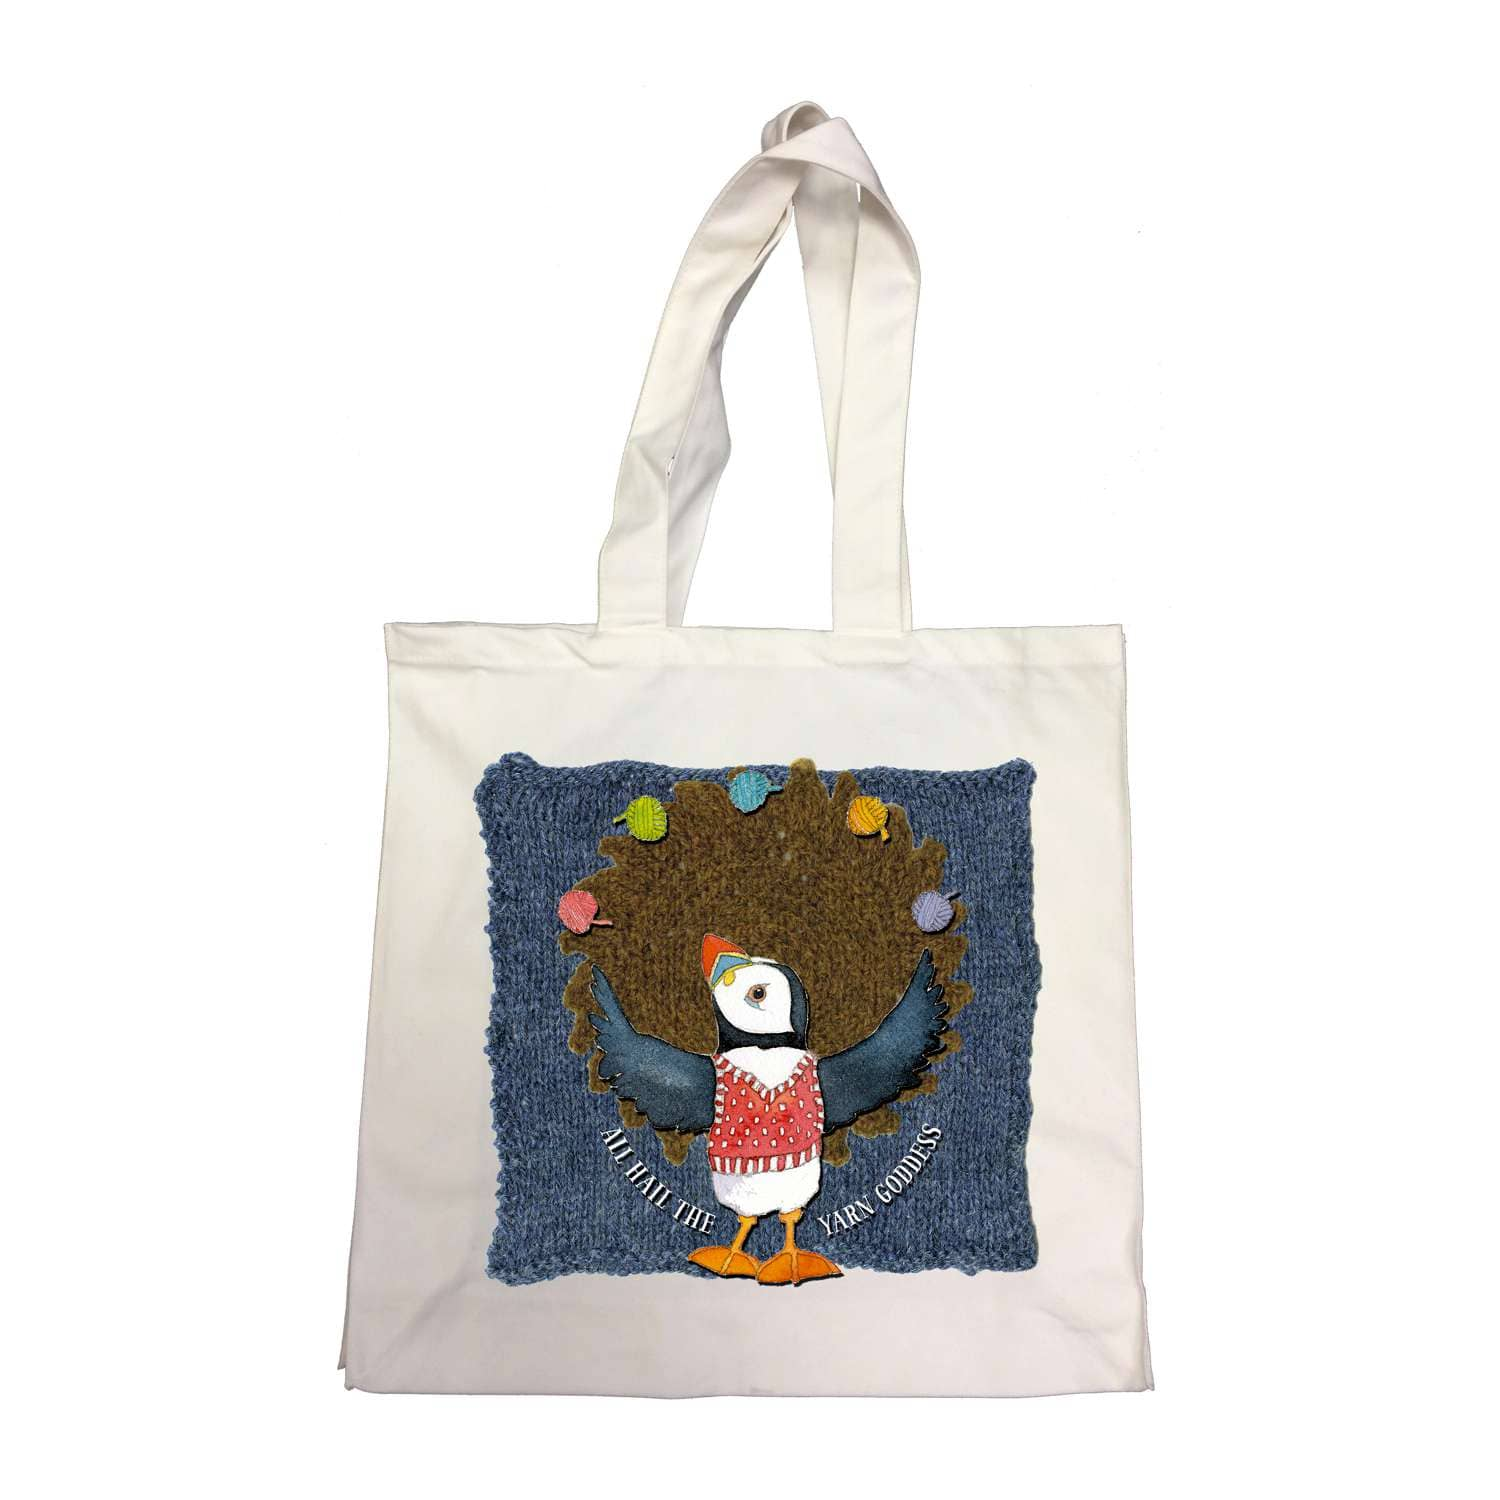 Emma Ball - Yarn Goddess - Cotton Canvas Bag | Yarn Worx